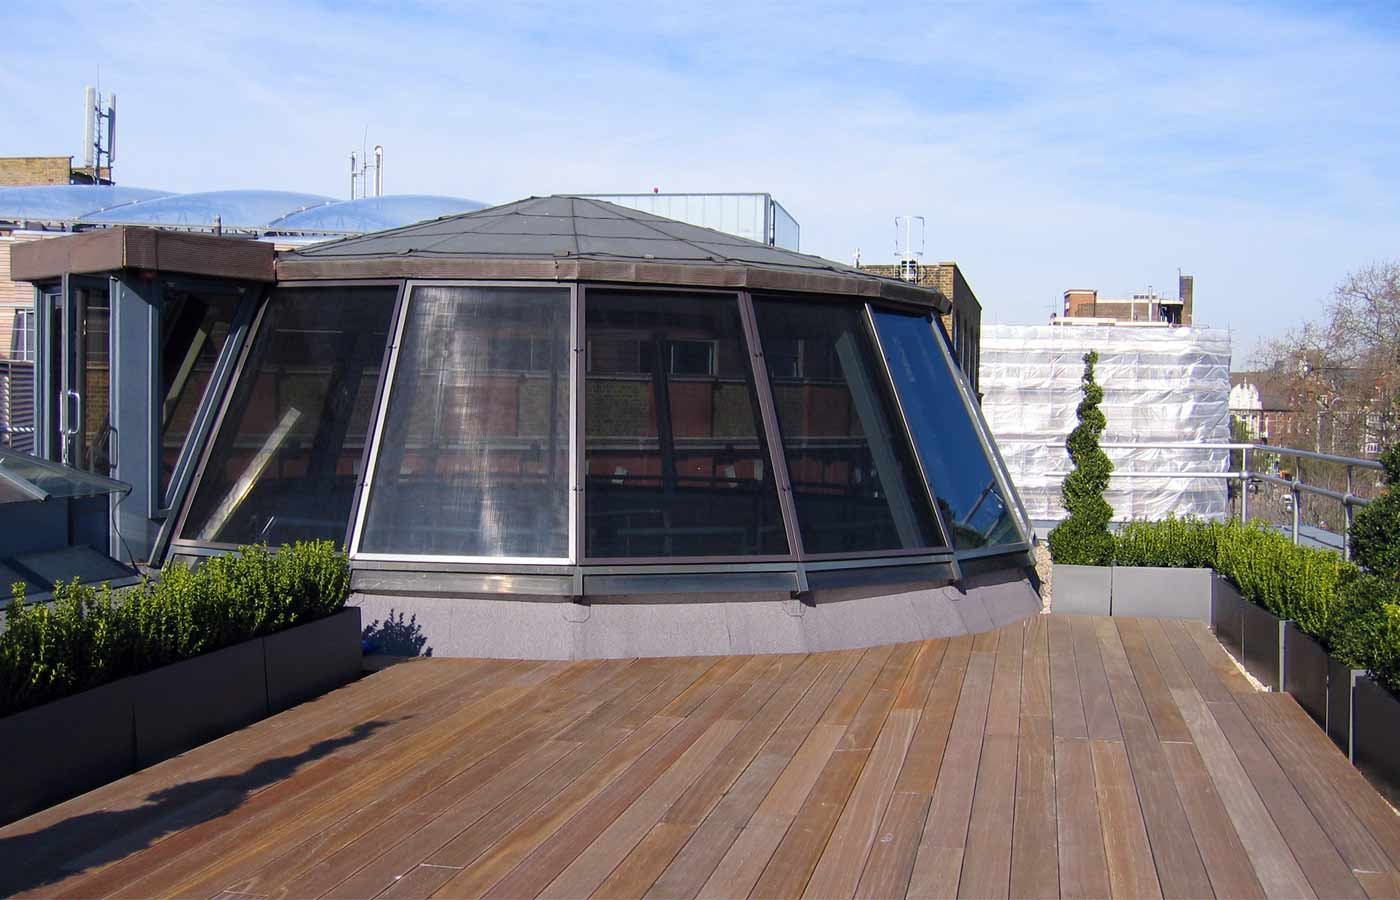 Company roof terrace